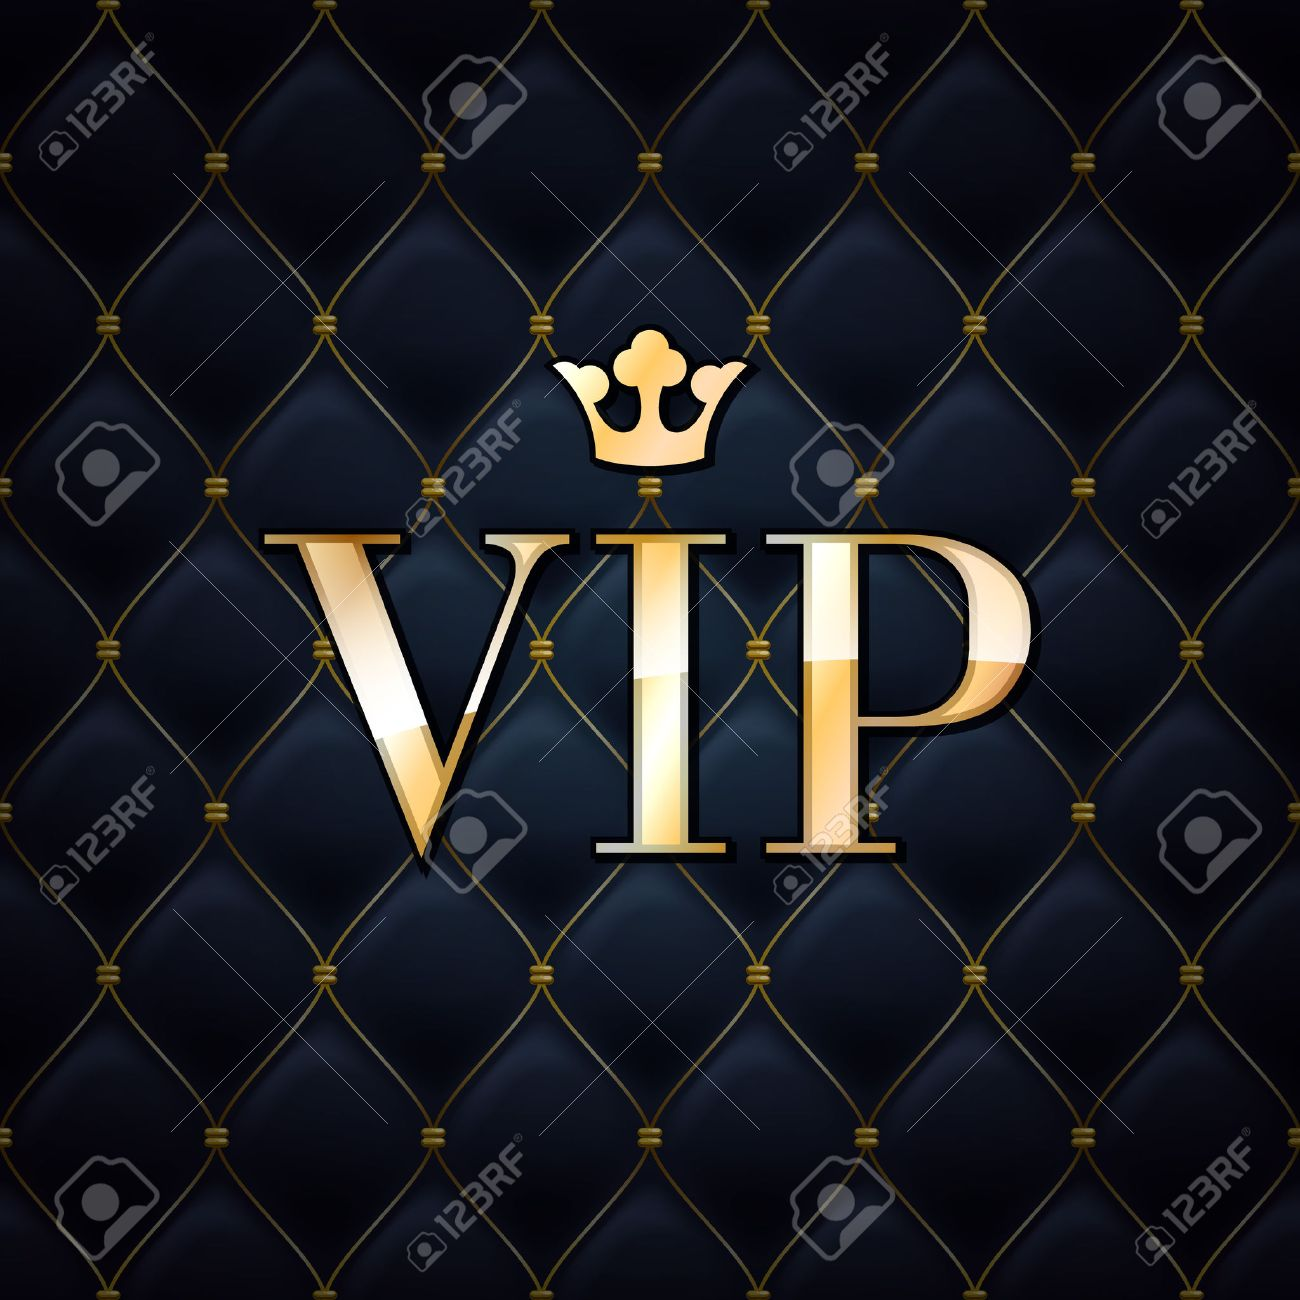 VIP abstract quilted background, diamonds and golden letters with crown. - 37035389